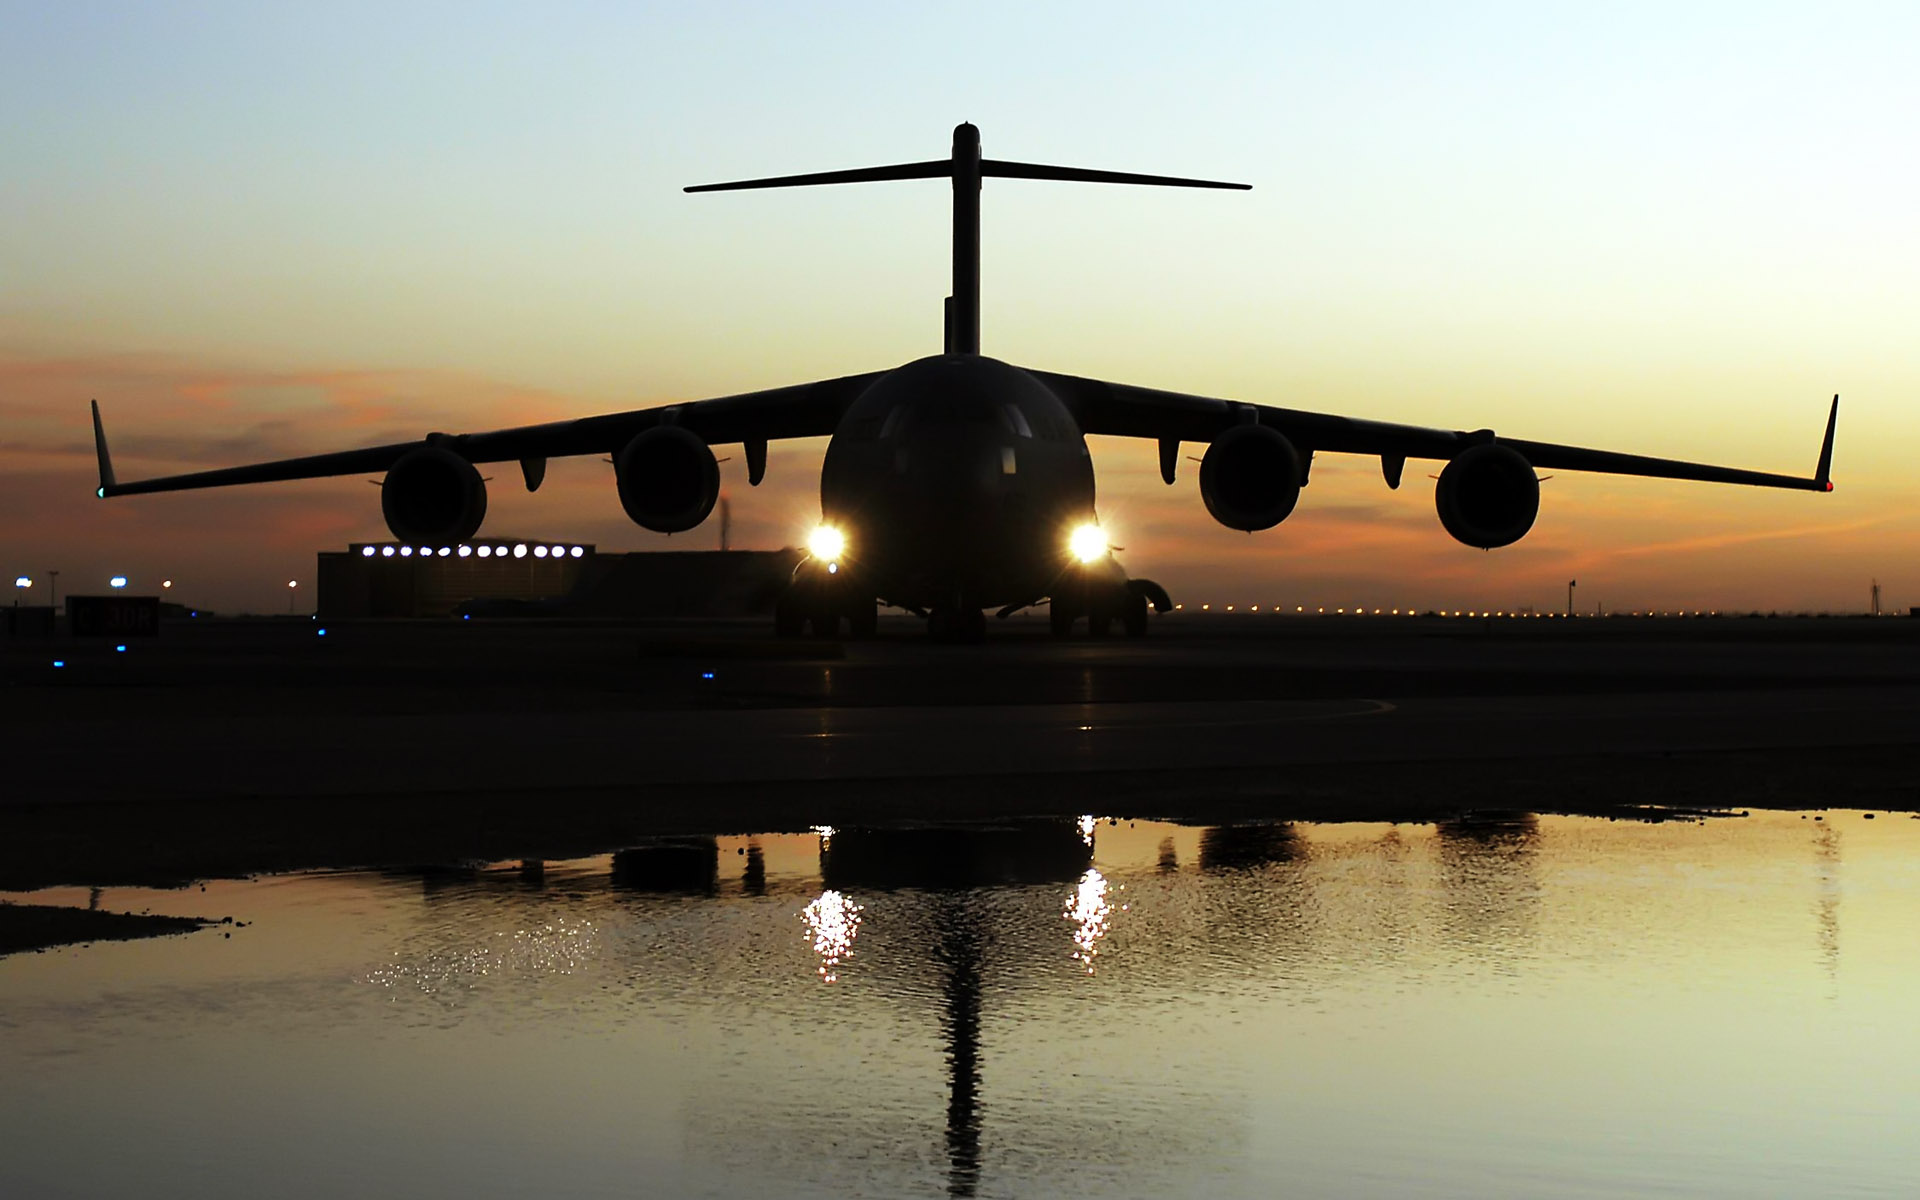 cool c17 wallpaper 34833